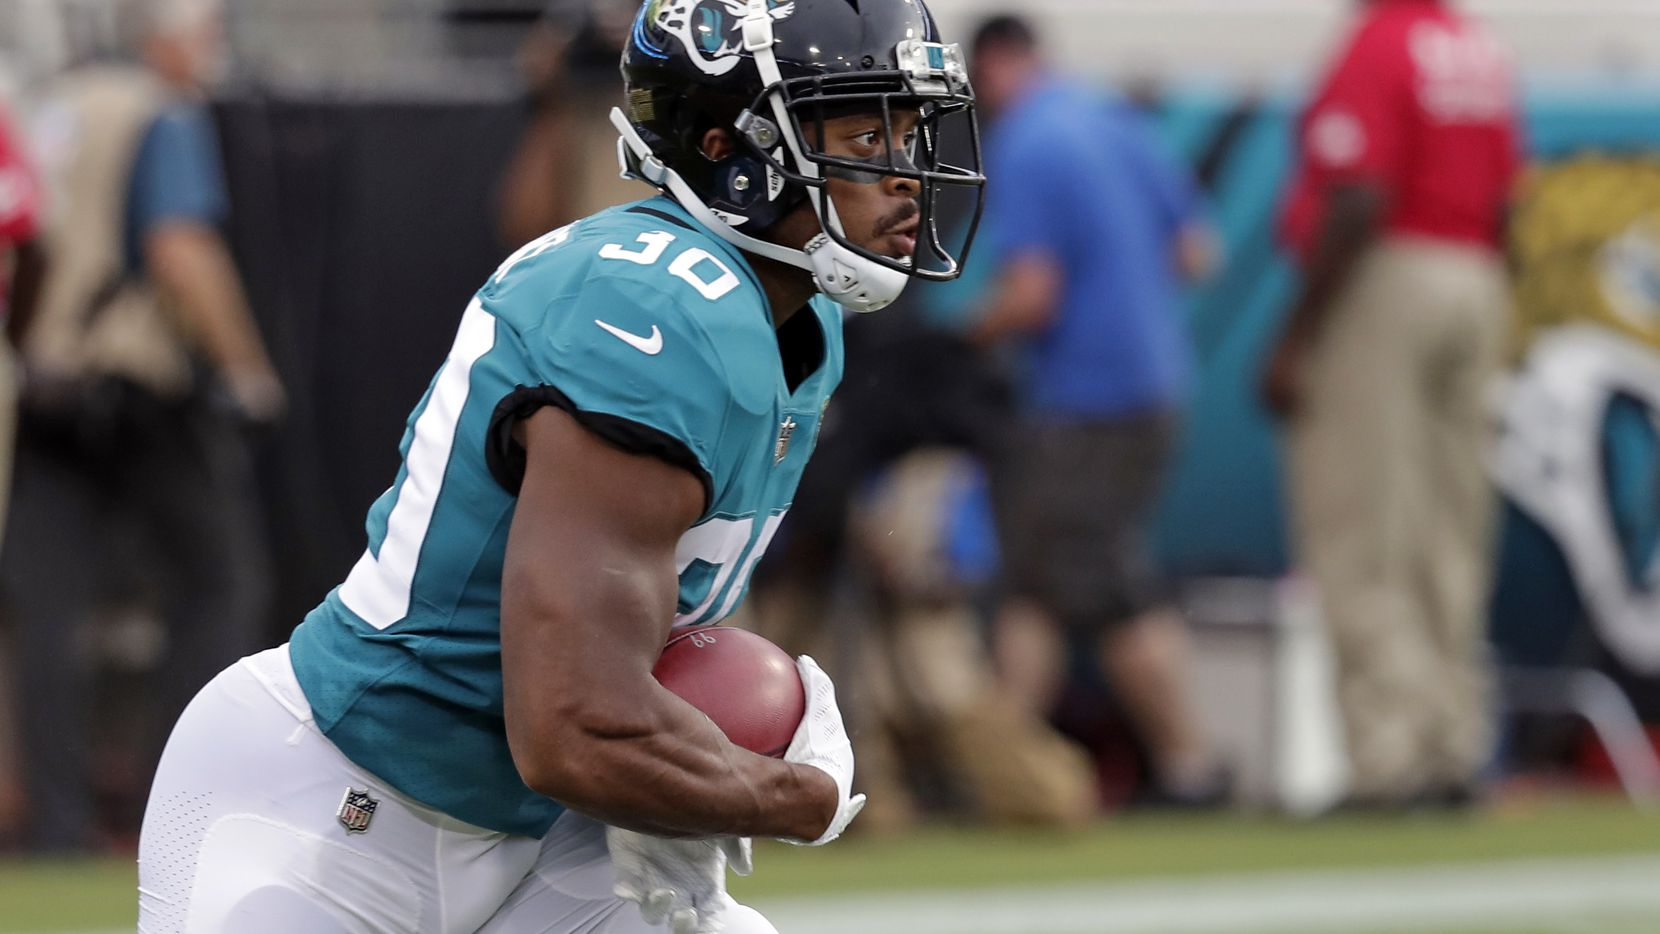 FILE - Jacksonville Jaguars running back Corey Grant returns a kickoff against the New Orleans Saints during the first half of an NFL preseason football game, Thursday, Aug. 9, 2018, in Jacksonville, Fla. (AP Photo/John Raoux)